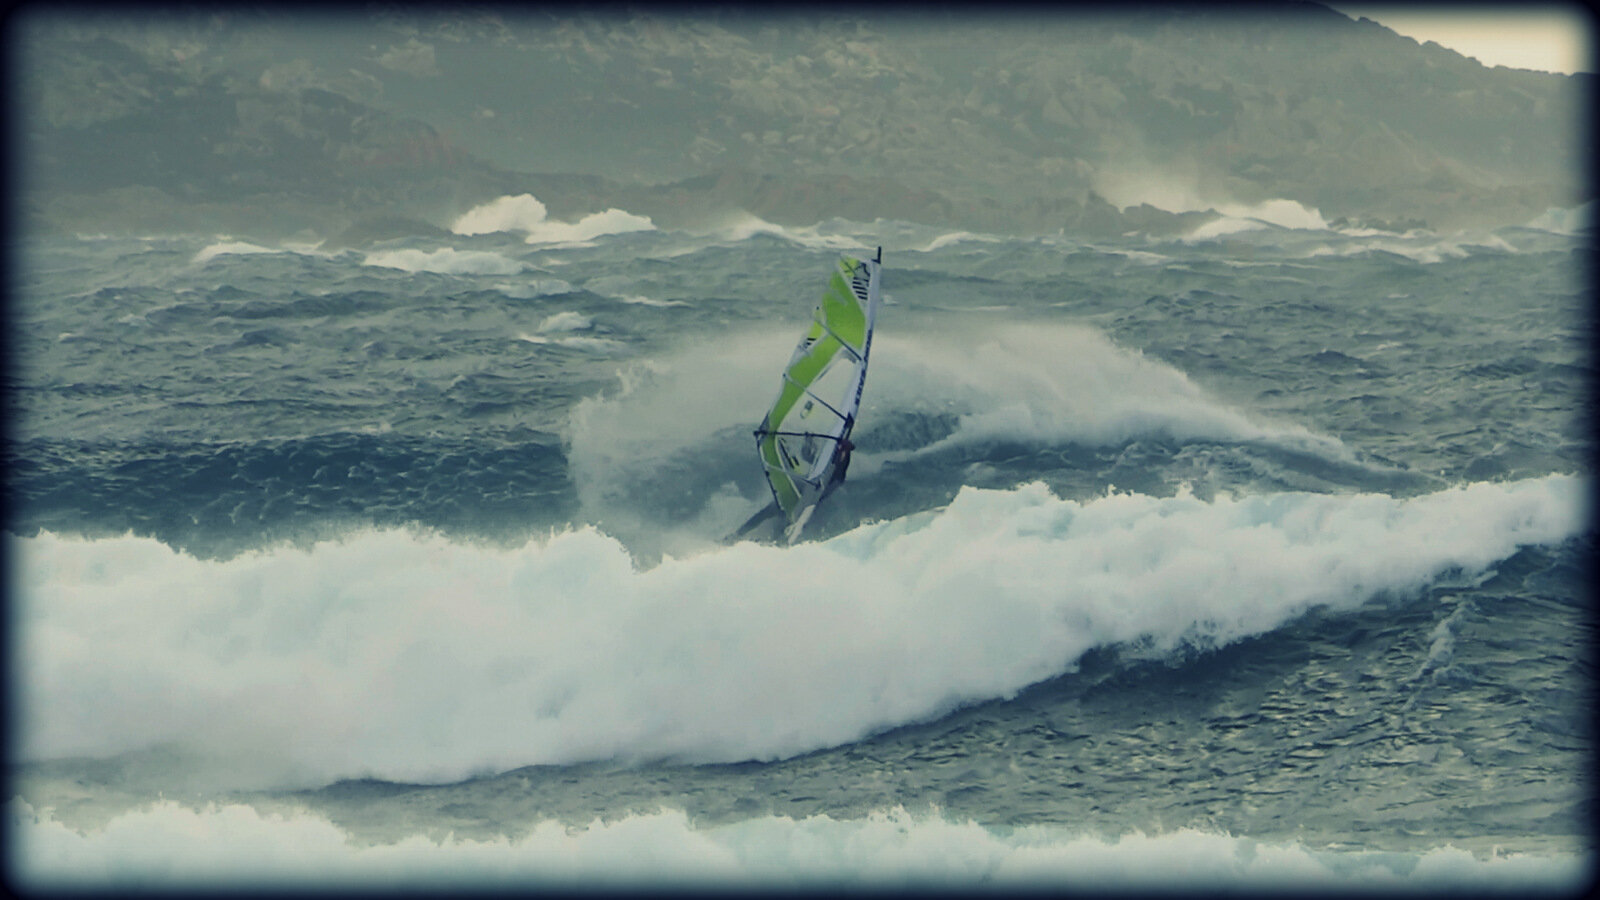 VIDEO // LE ROLLER SLASH WINDSURF ...